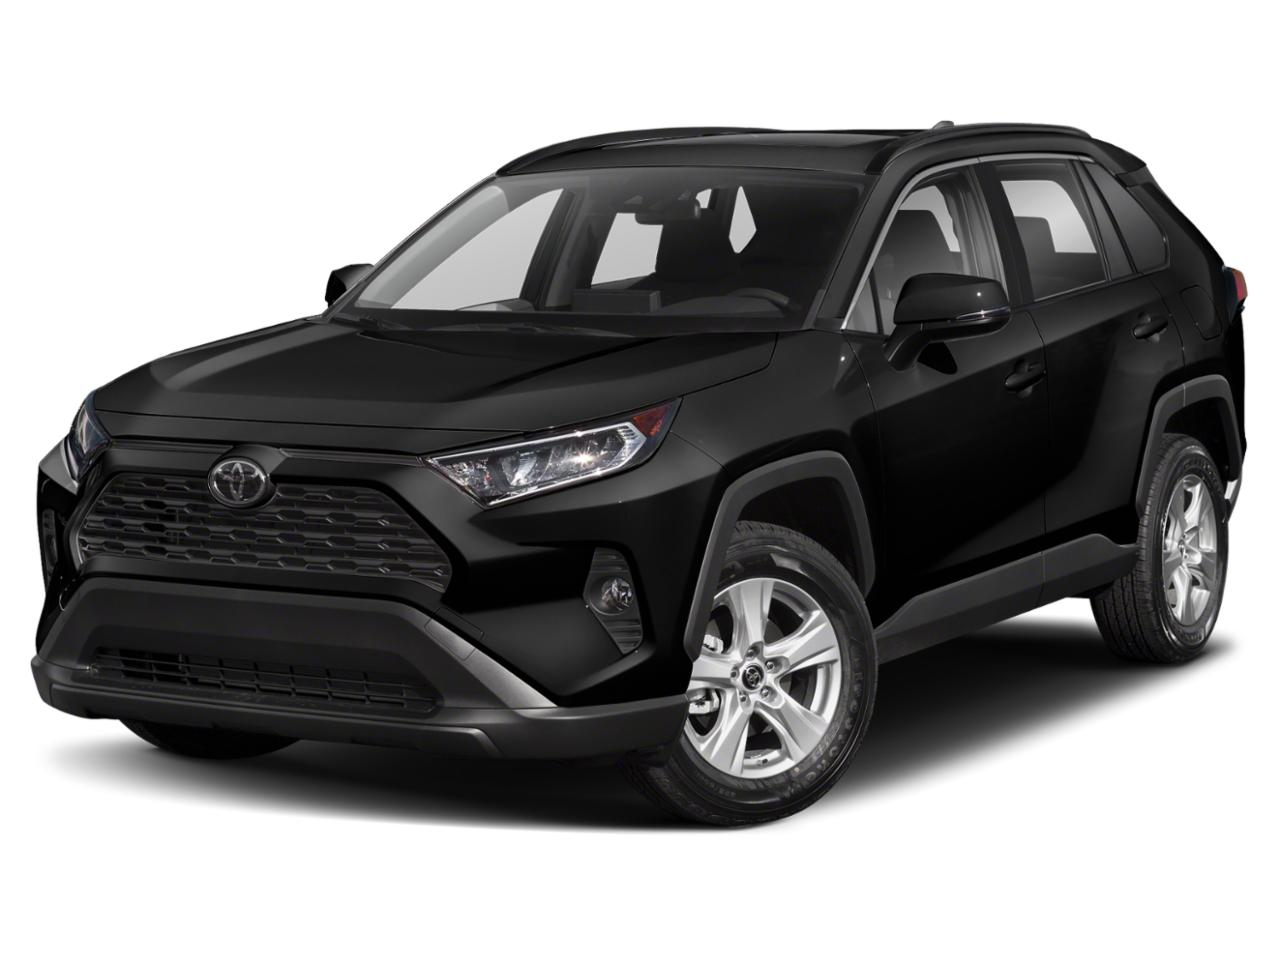 2021 Toyota RAV4 Vehicle Photo in Oshkosh, WI 54904